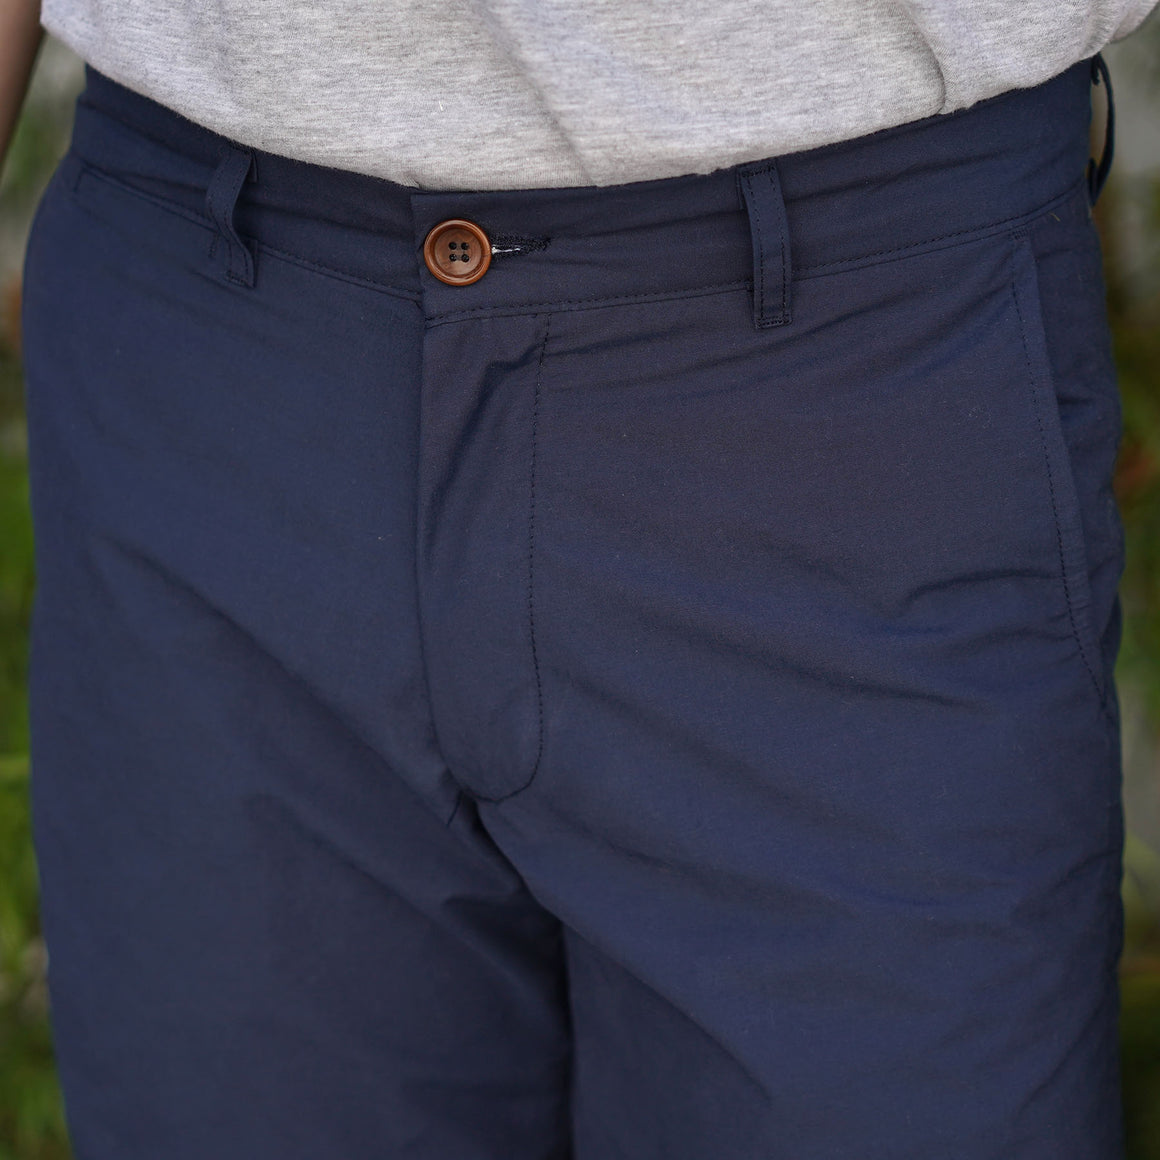 Rivet Chino Short Nylon/Cotton Navy